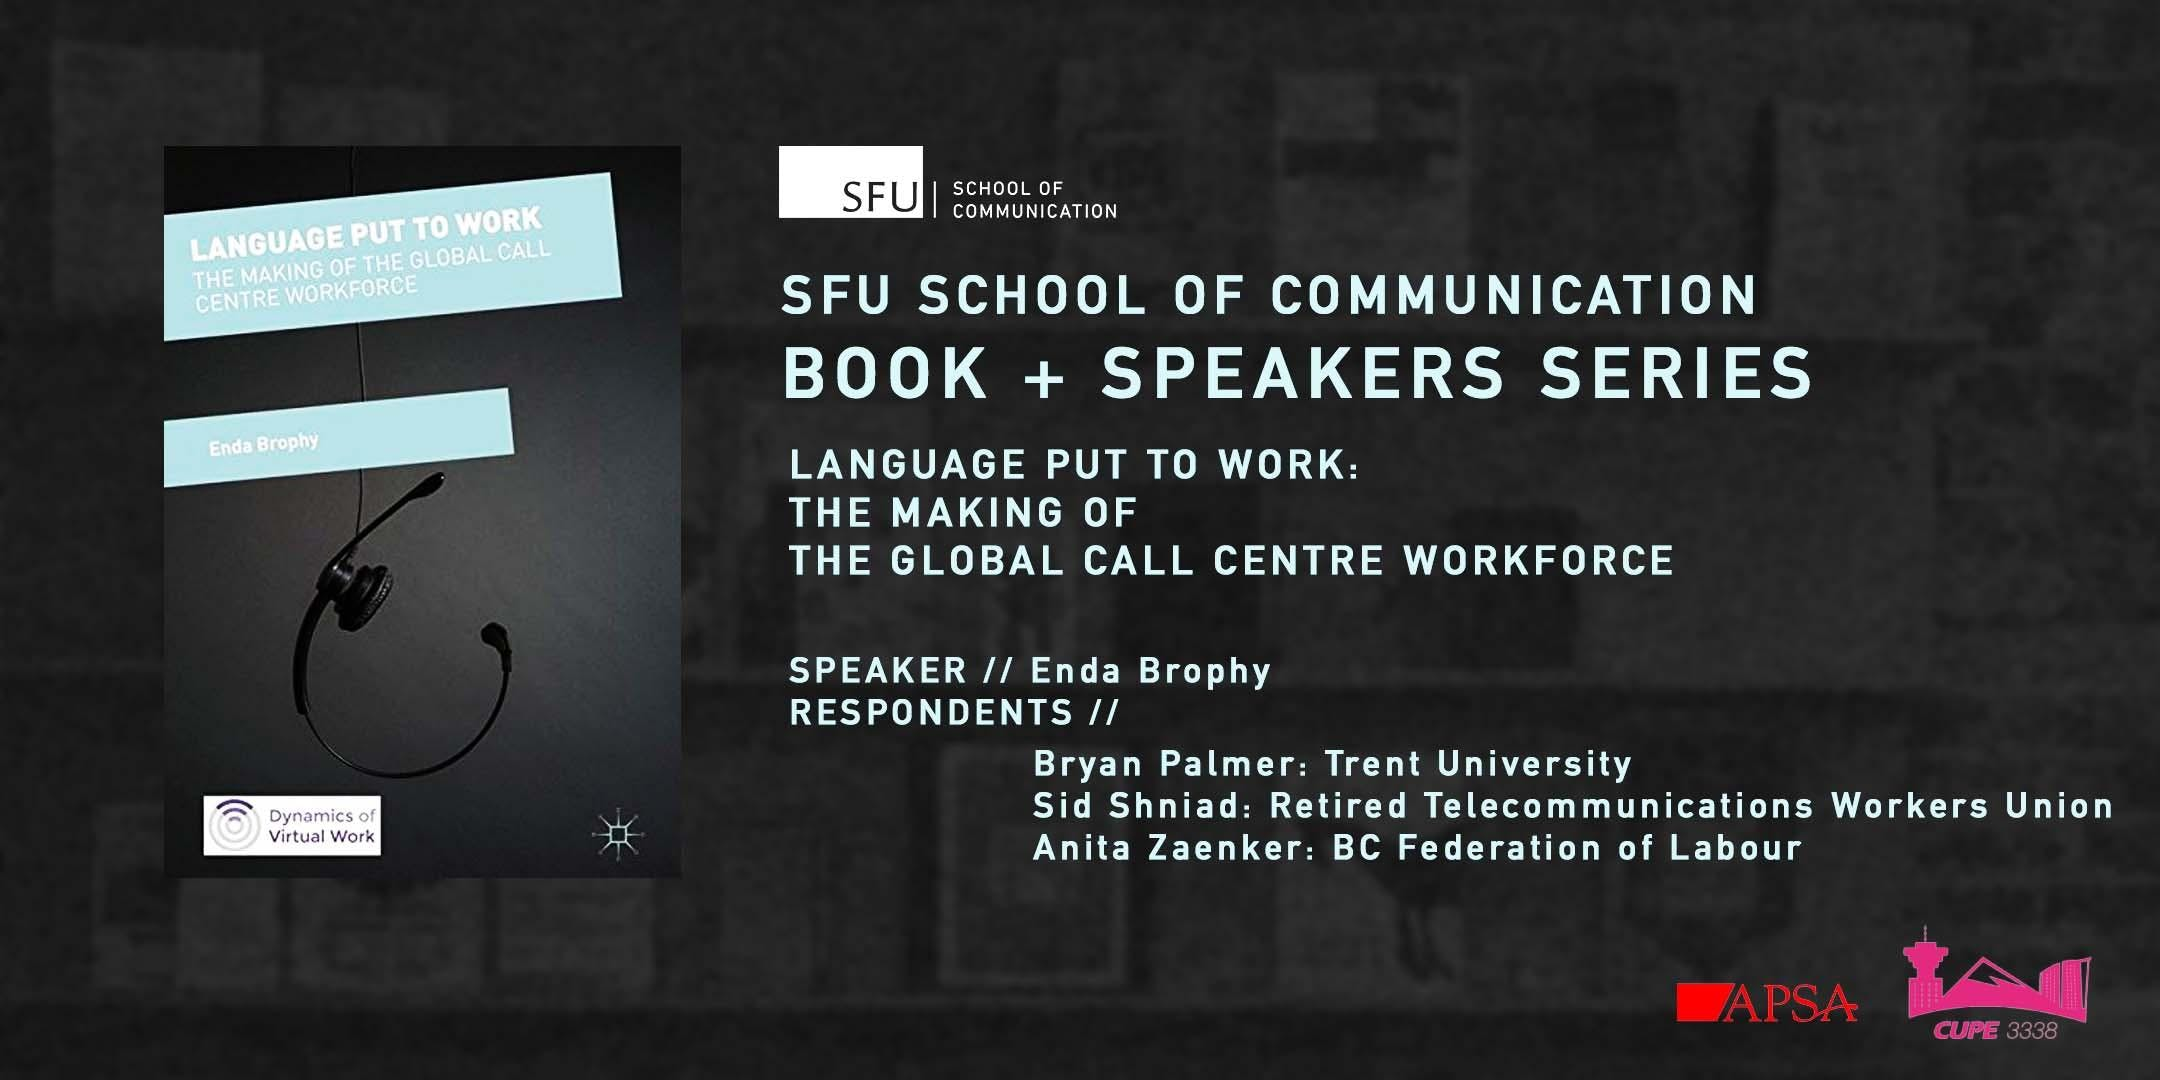 book speakers series language put to work the making of the global call centre workforce